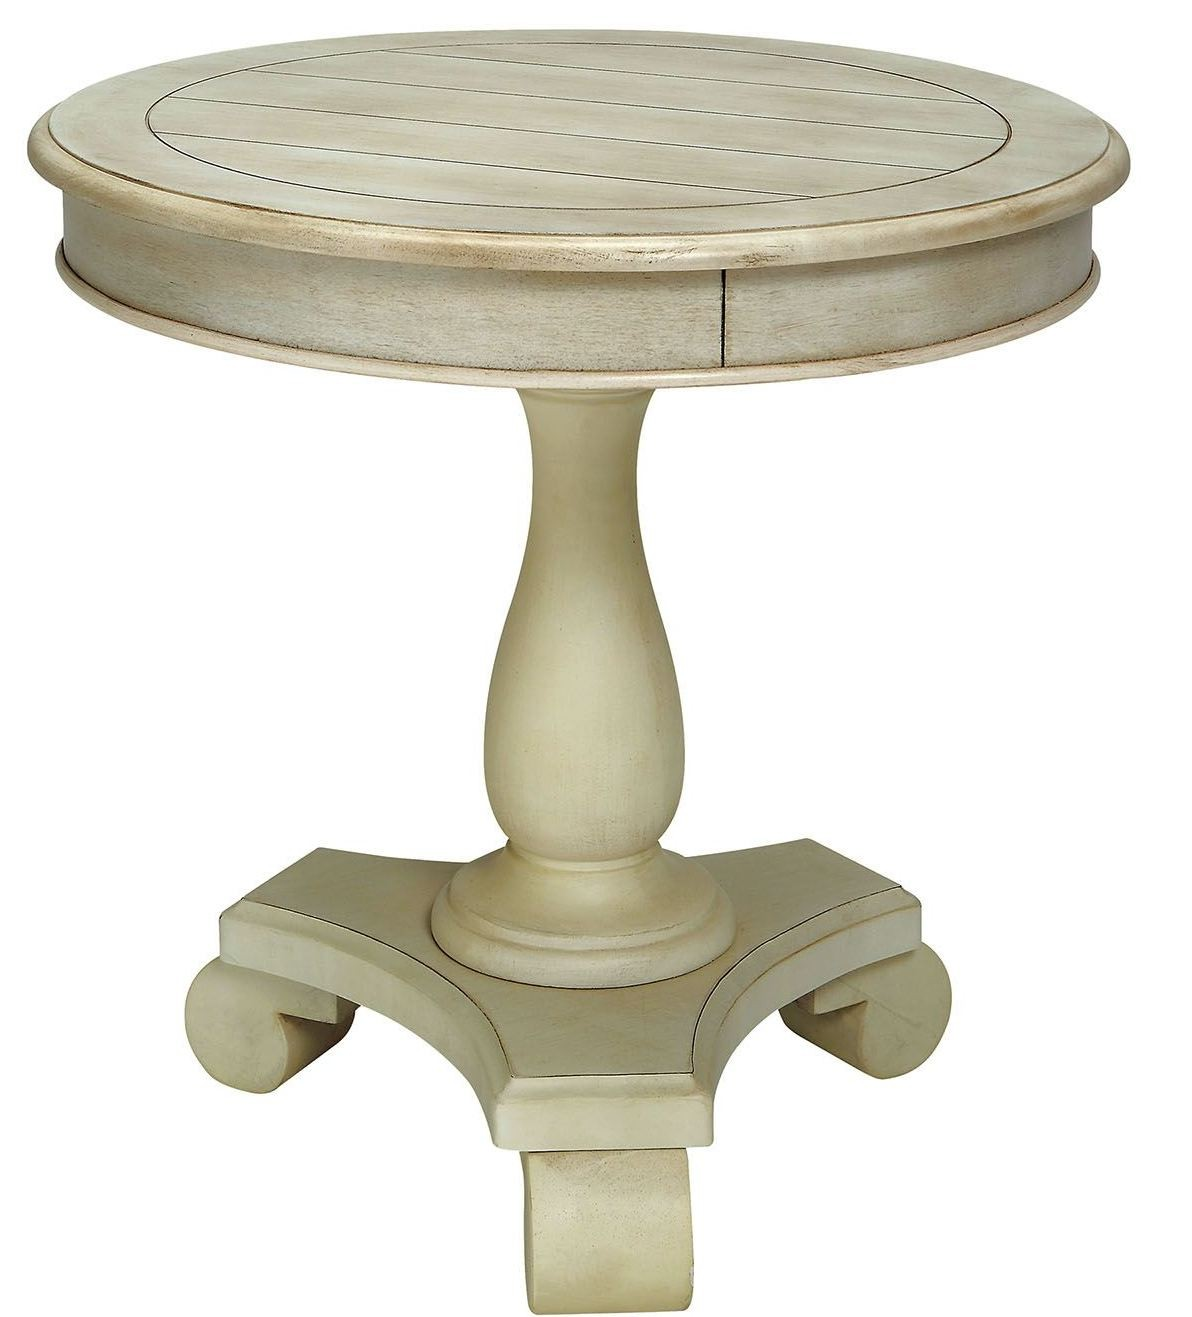 white round accent table small kalea antique from furniture the eryn black wire coffee orange chair contemporary kitchen tables worktop legs grey bedroom lamps cool home decor